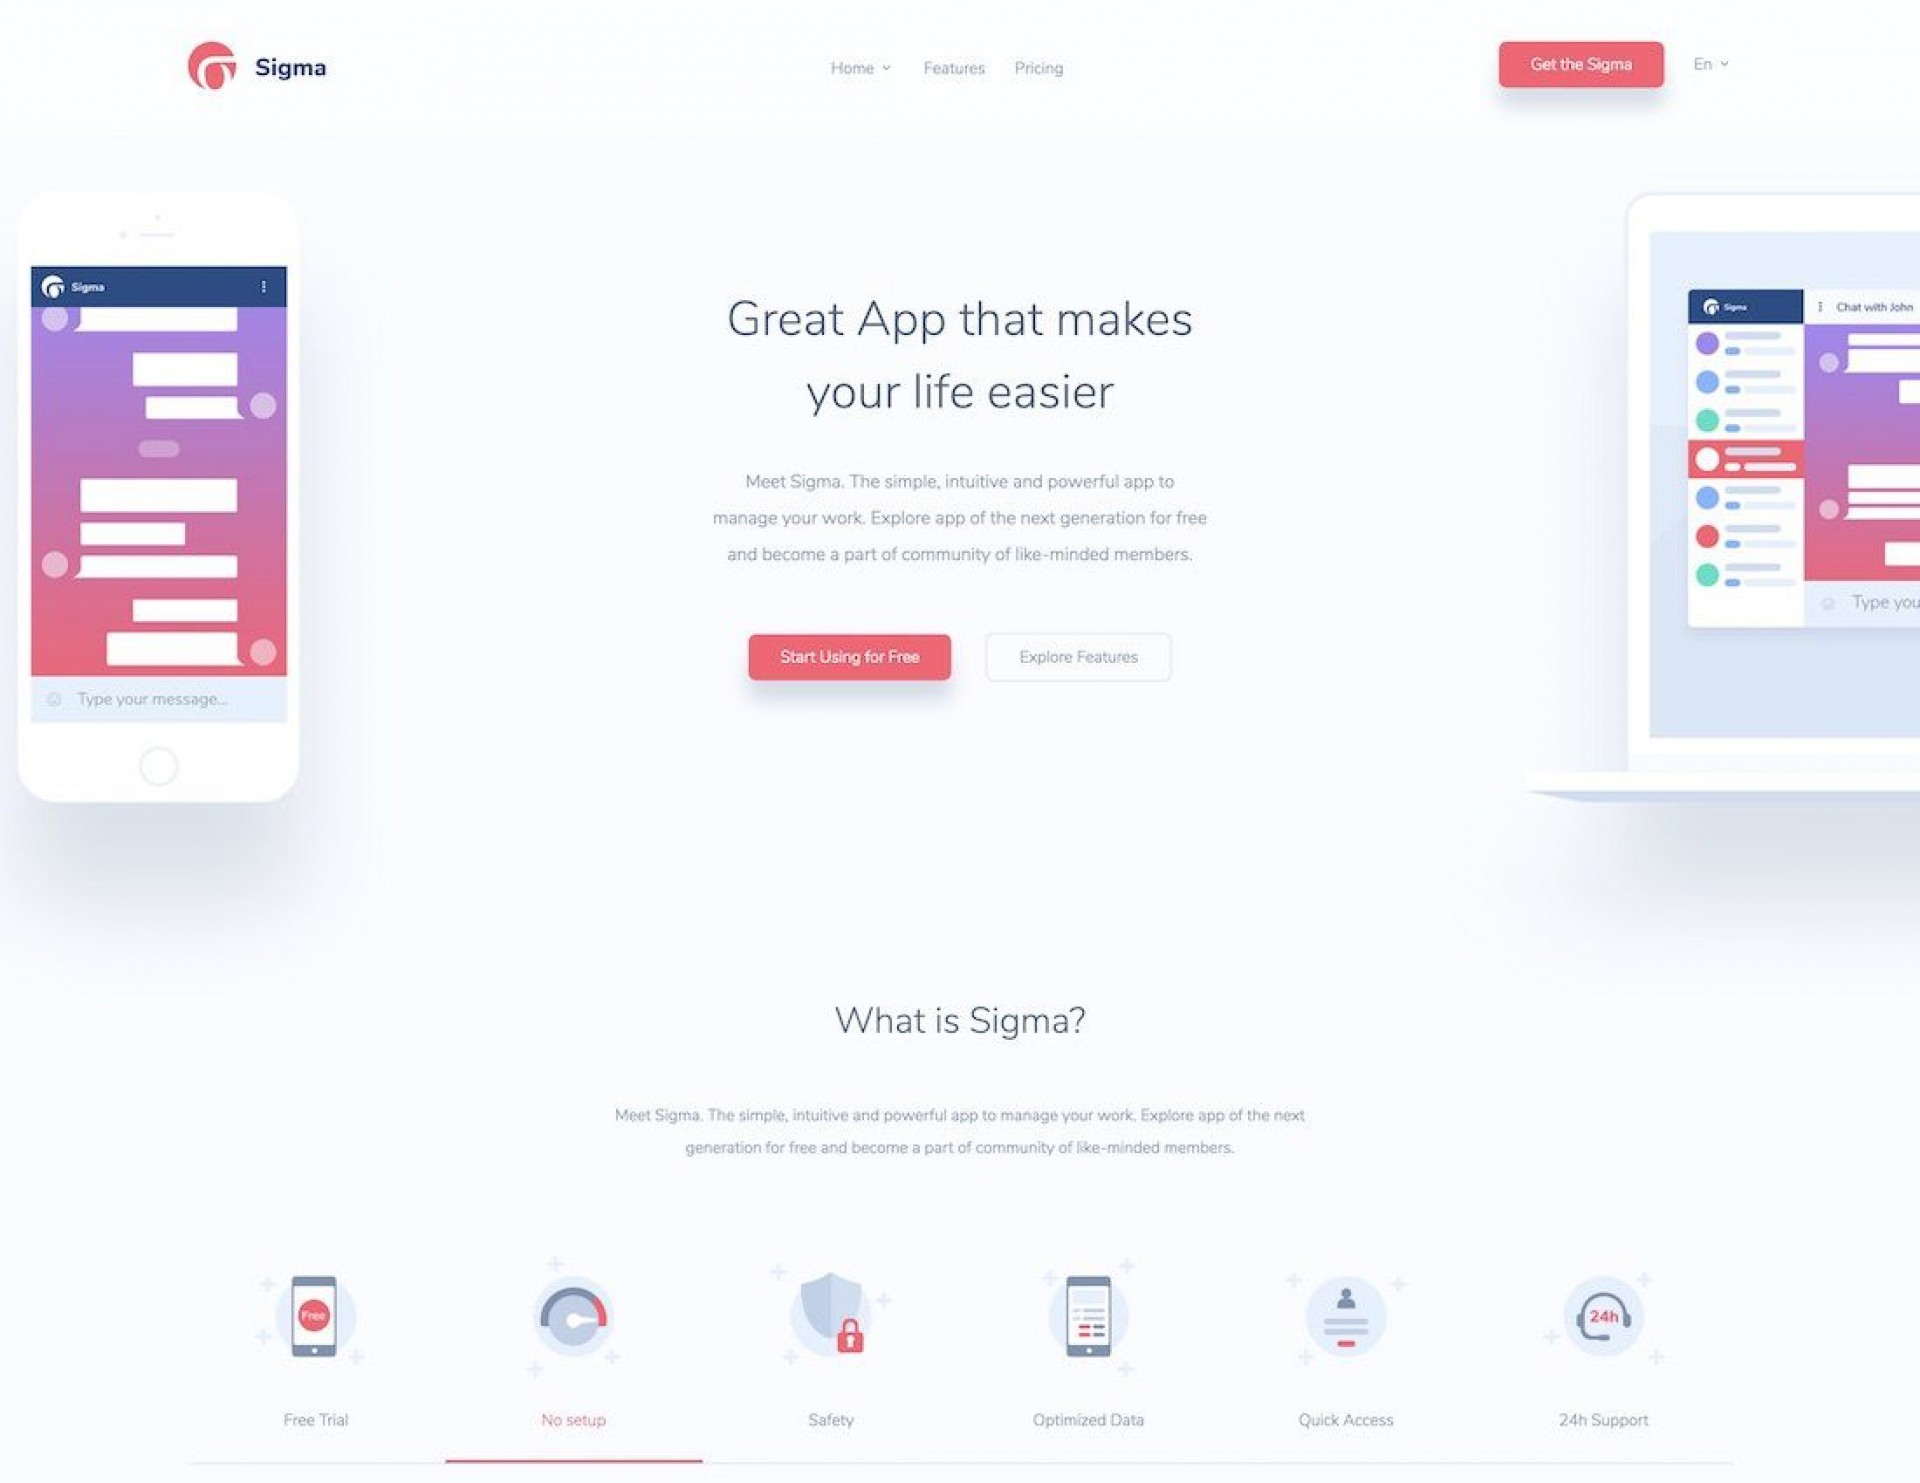 005 Surprising Mobile Friendly Web Template High Definition  Templates Free Page1920